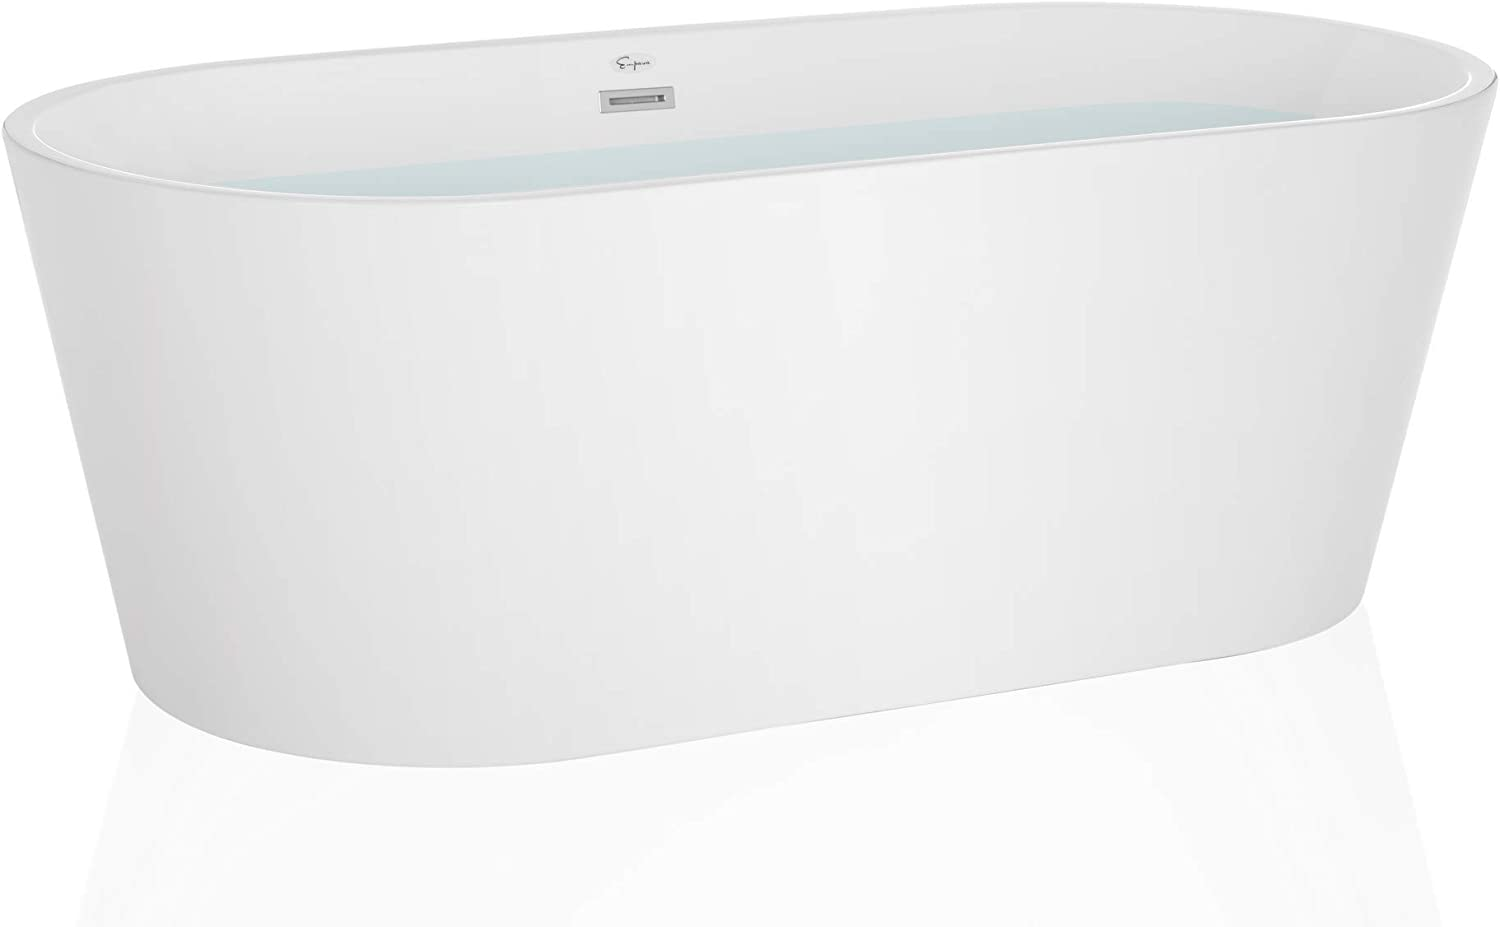 Empava 59 Made in USA Stand Alone Acrylic Soaking SPA Tub Modern Freestanding Bathtubs with Custom Contemporary Design EMPV-59FT1505